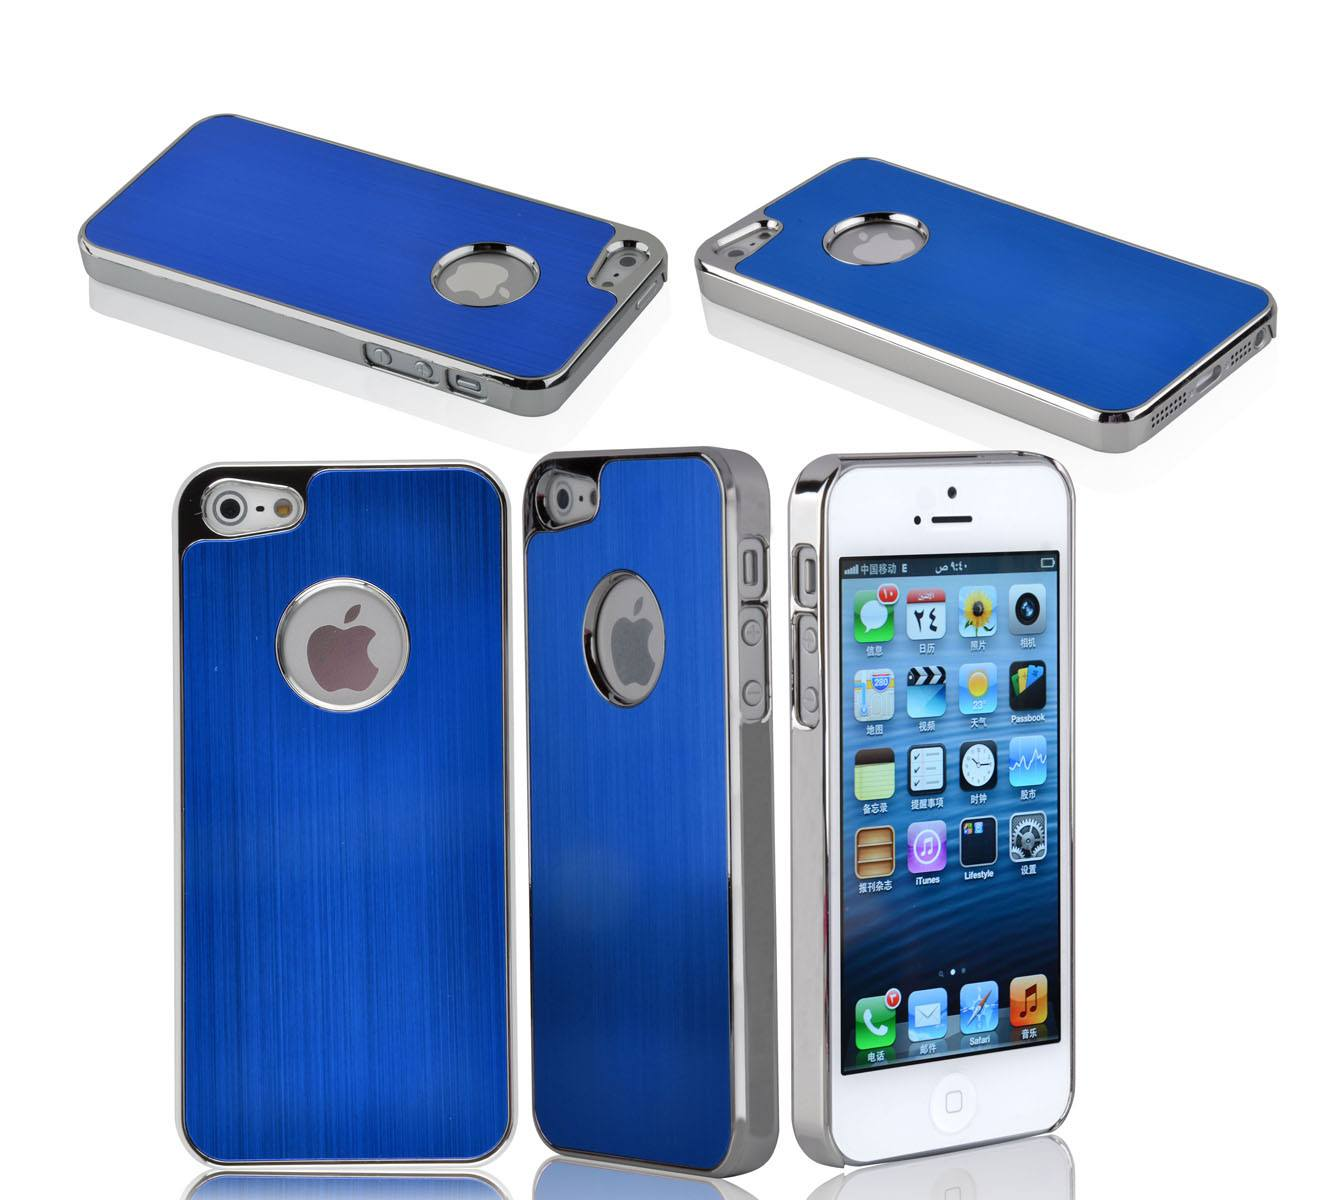 iPhone 5 Premium Brushed Aluminum Case - Blue